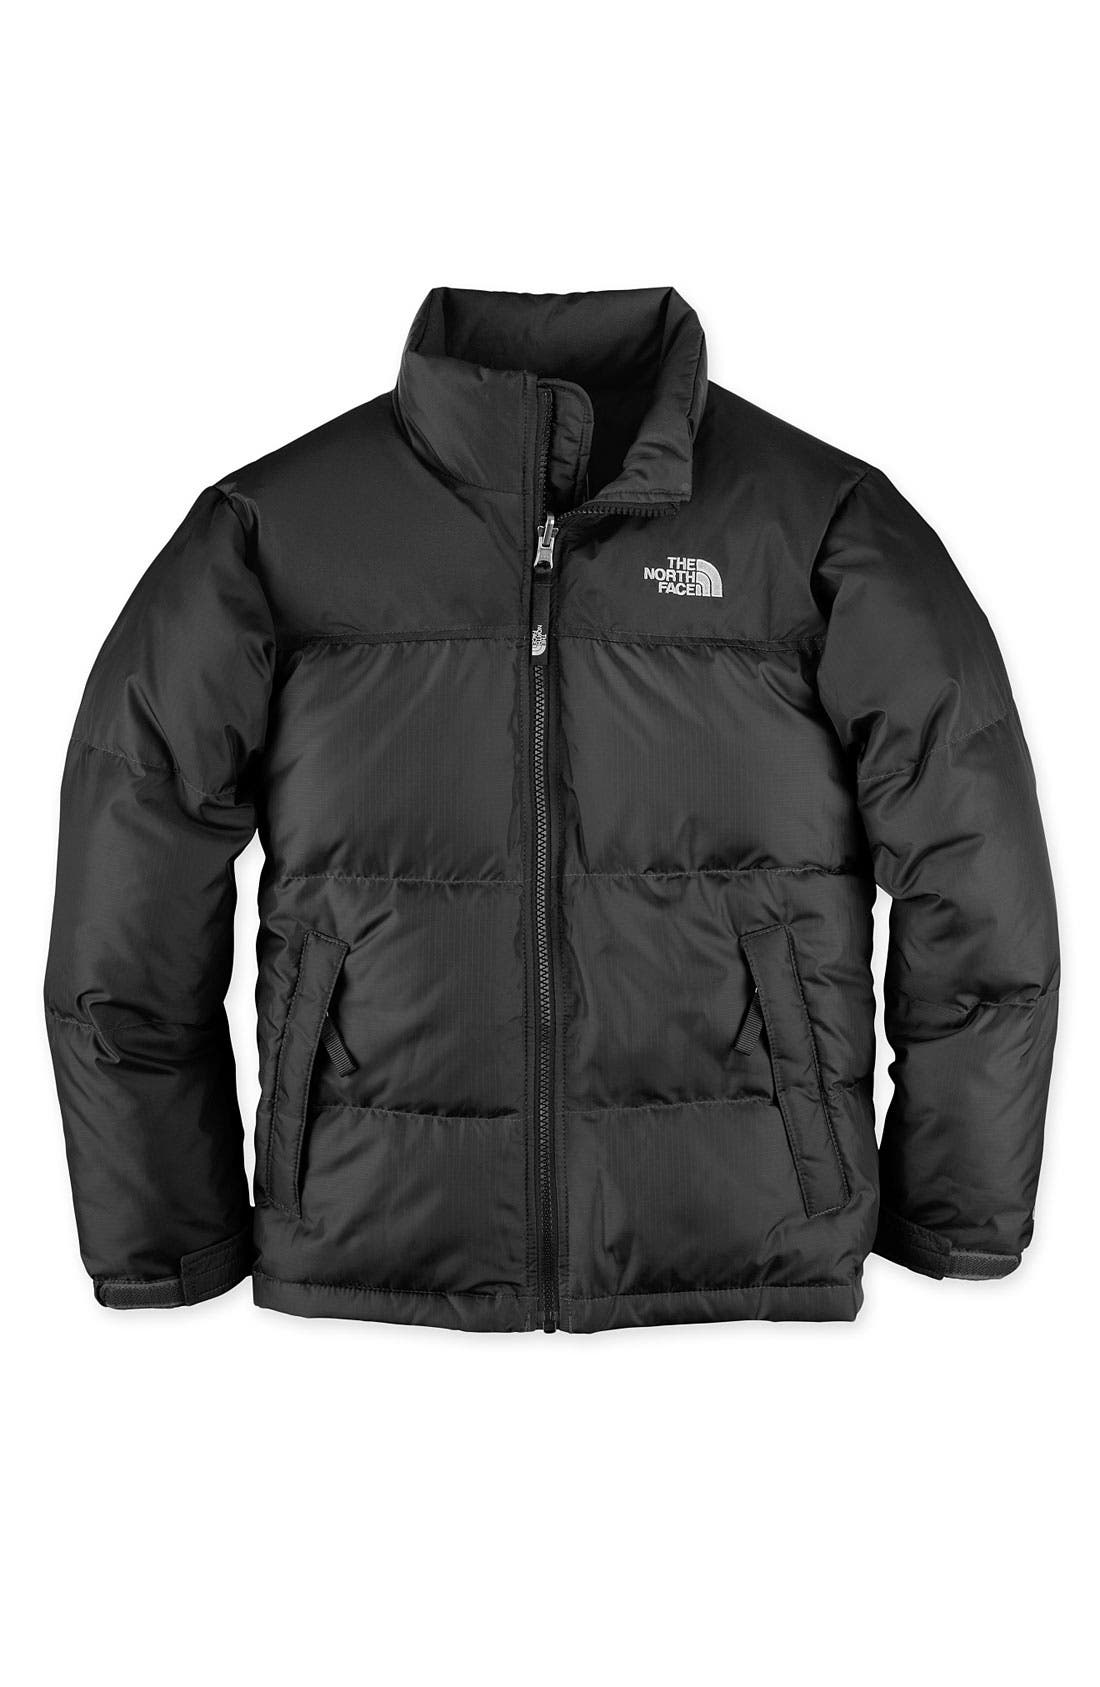 Alternate Image 1 Selected - The North Face 'Nuptse' 550-Fill Down Jacket (Big Boys)